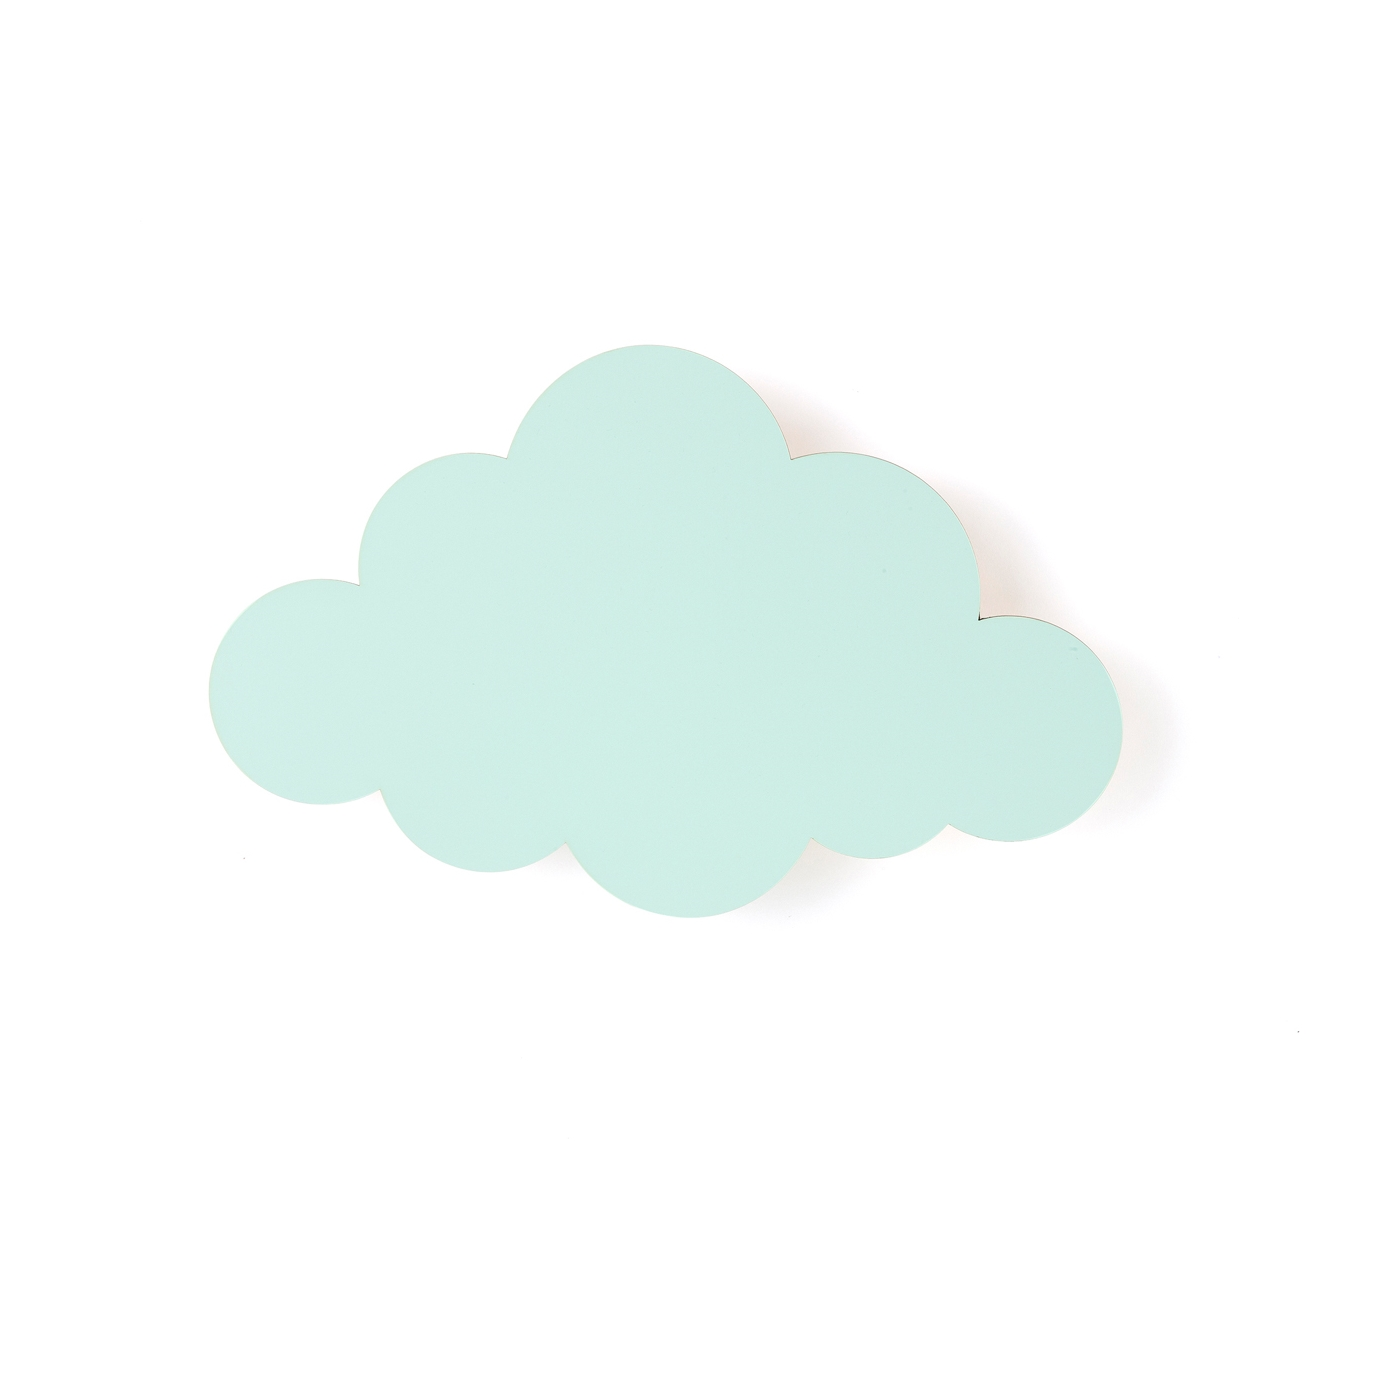 Barnlampa Cloud mint, Ferm Living